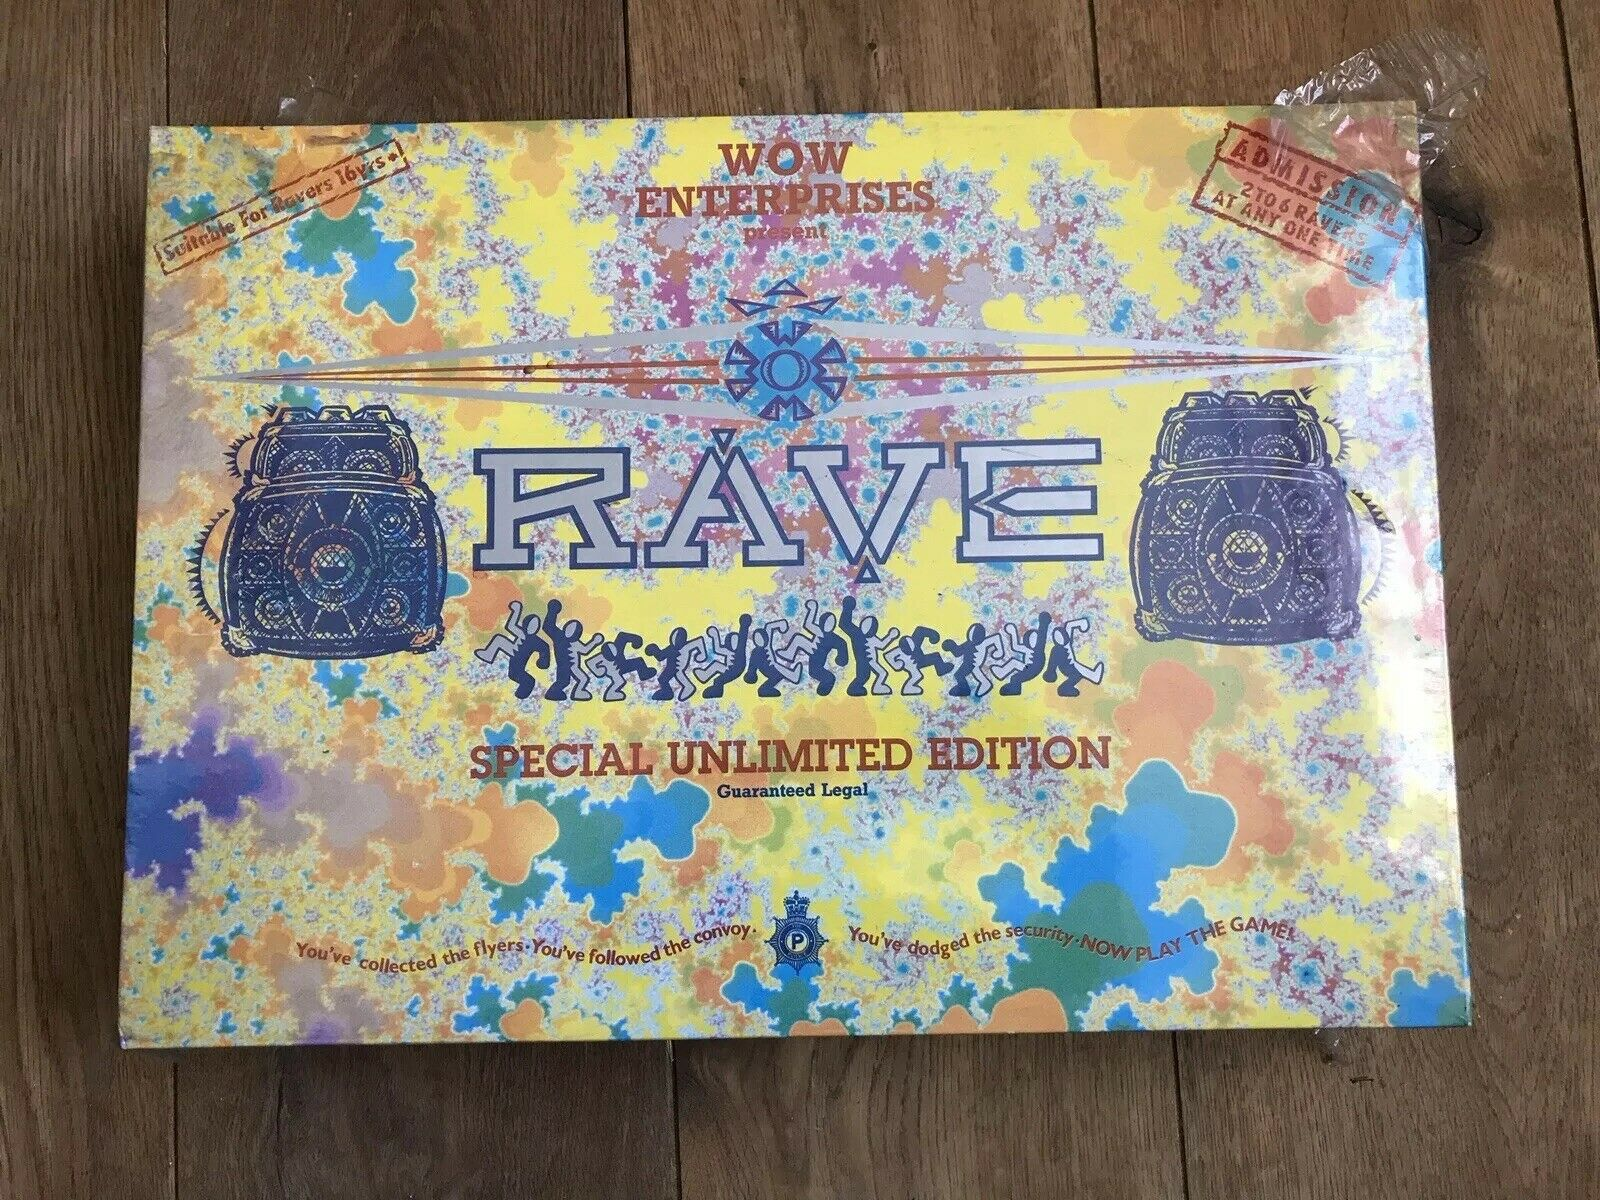 Still Sealed Rave Board Game Special Edition - Old Skool Ravers 1991 - Rare Find